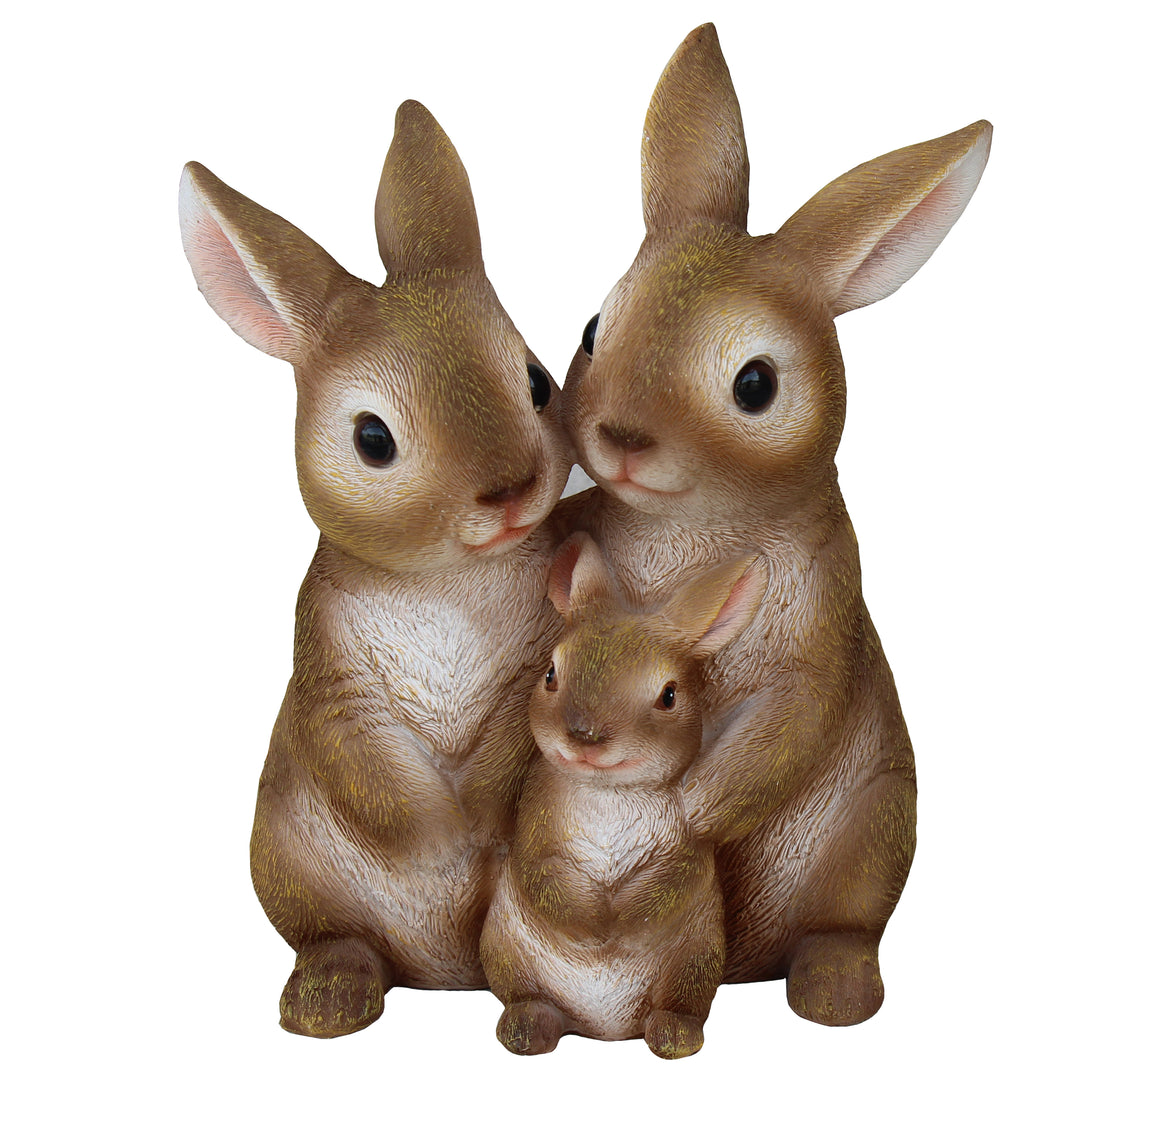 Standing Bunny Family Figurine, Terrace Miniature Statue, Three Cute Rabbits Figure, Outdoor Decor, Garden and Lawn Ornament. DM417A